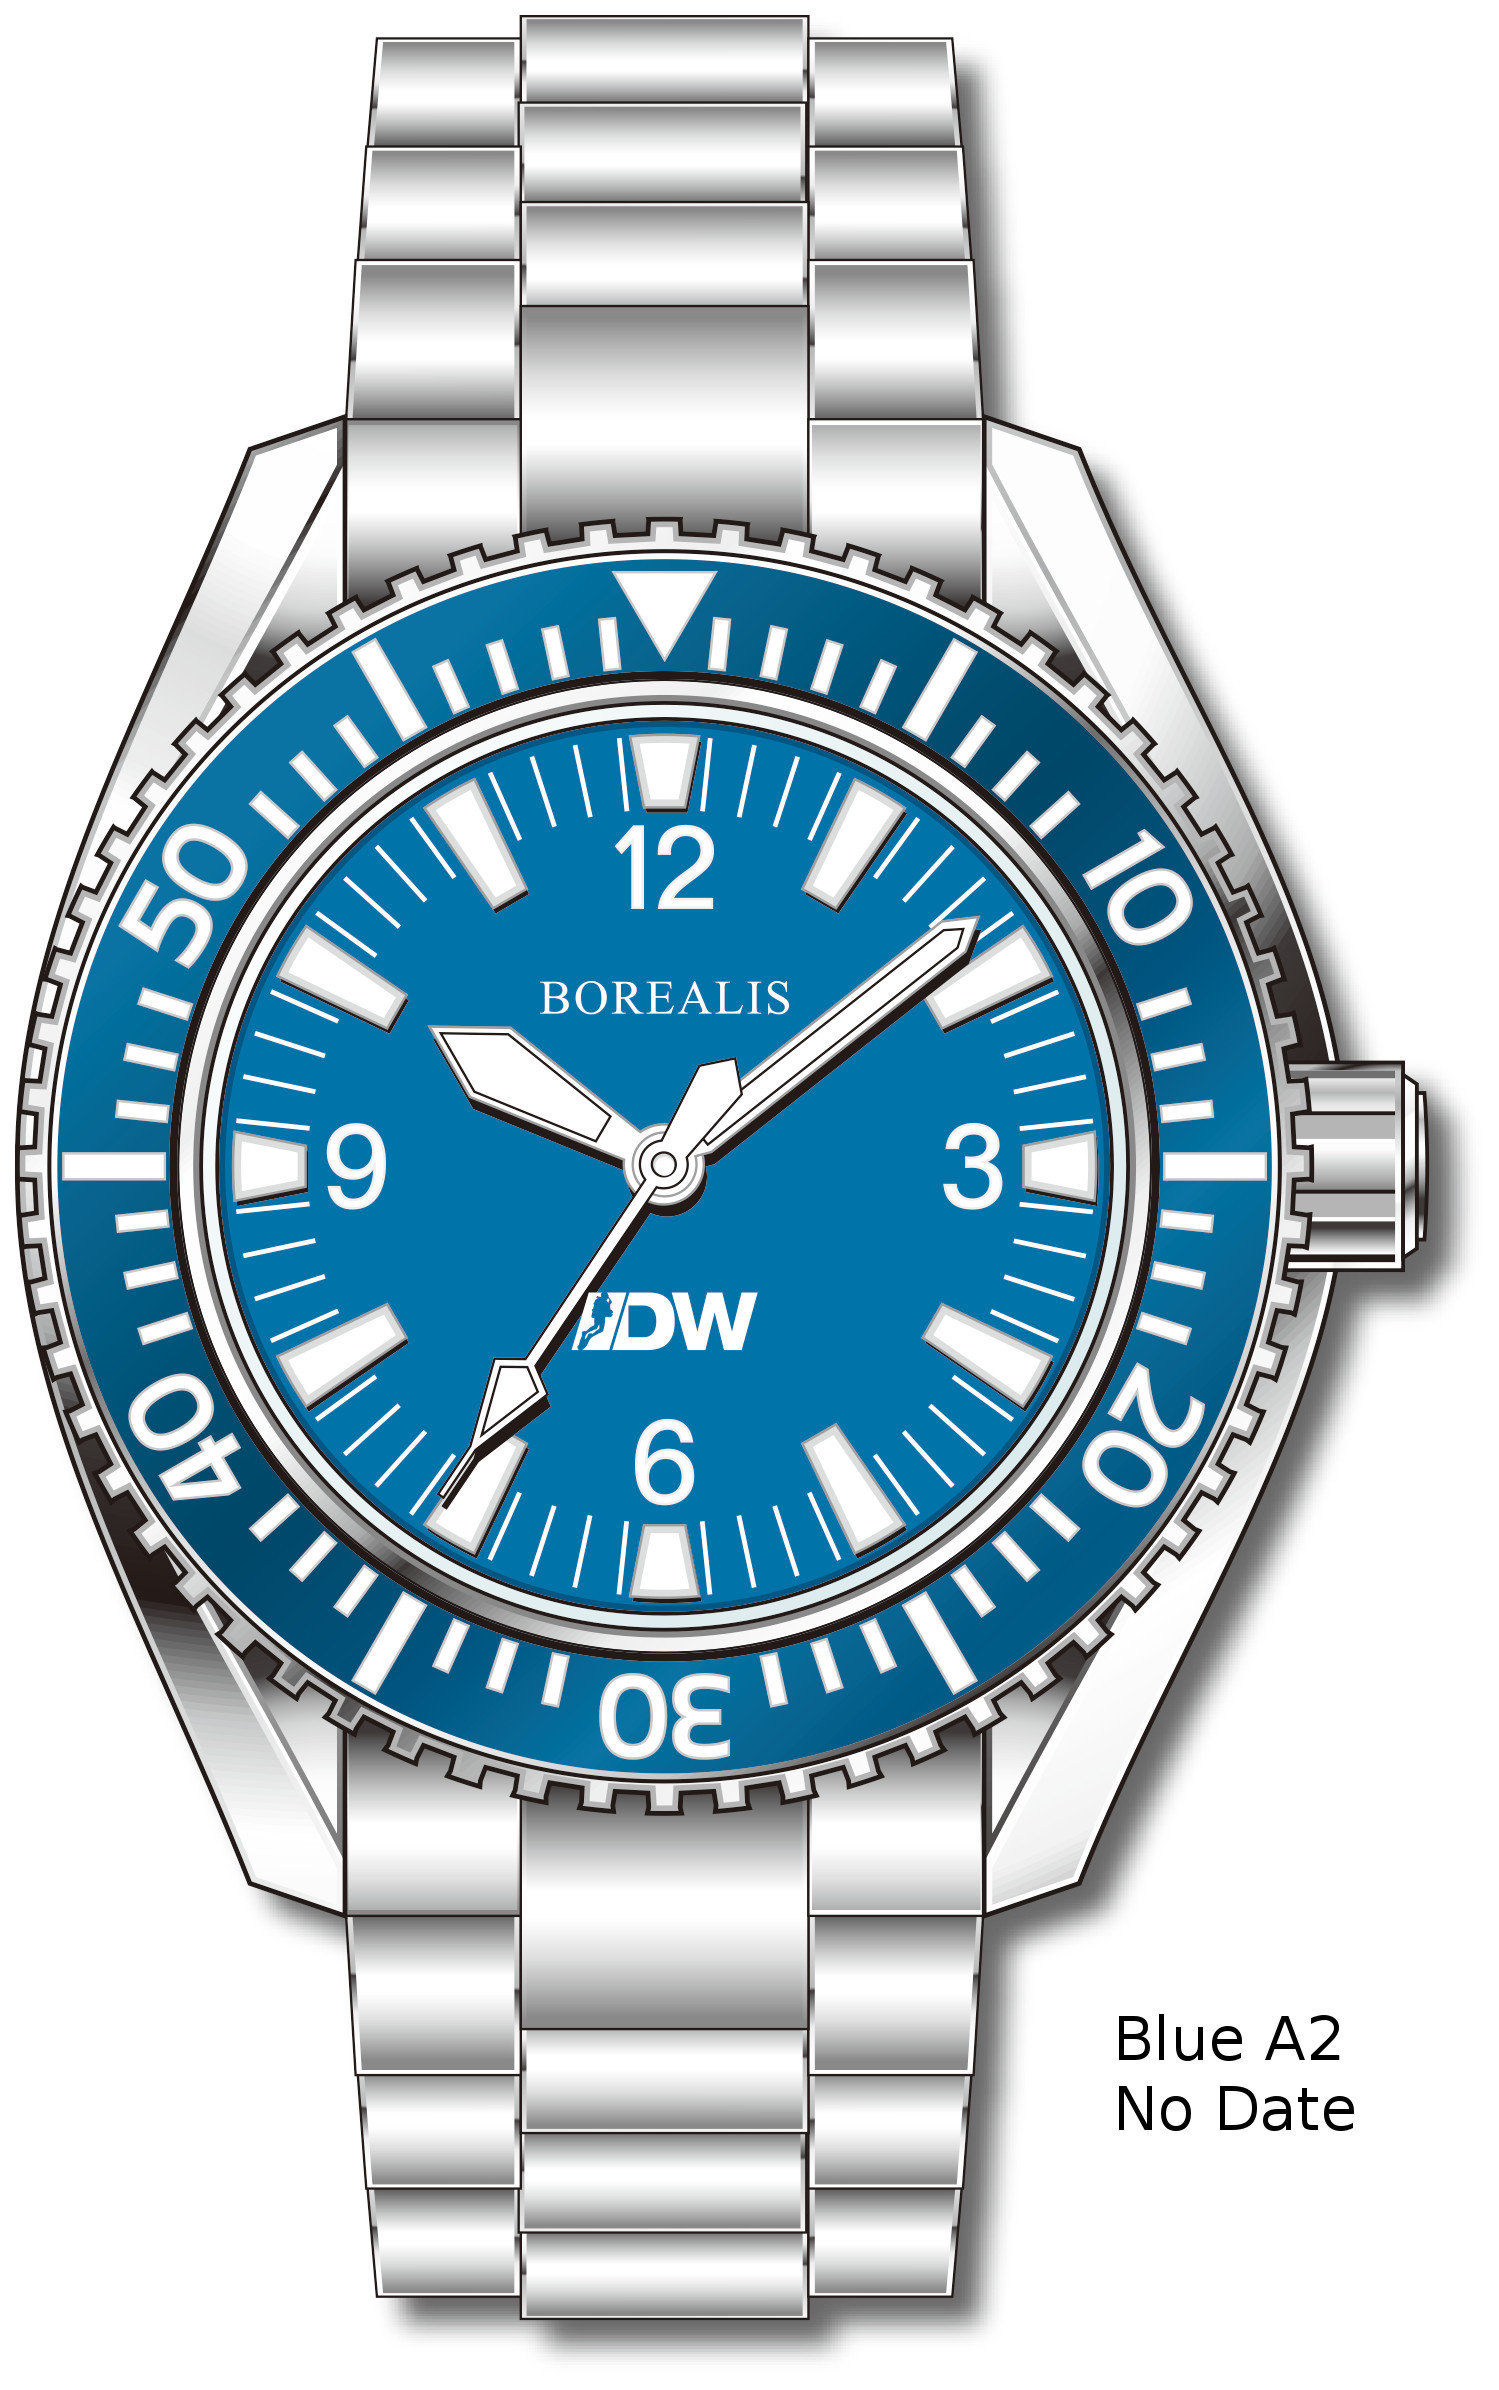 Pre-Order Borealis Estoril 300 for Diver's Watches Facebook Group Blue Dial Arabic Numbers No Date Blue A2 No Date EDWFBGBLUEA2NDT